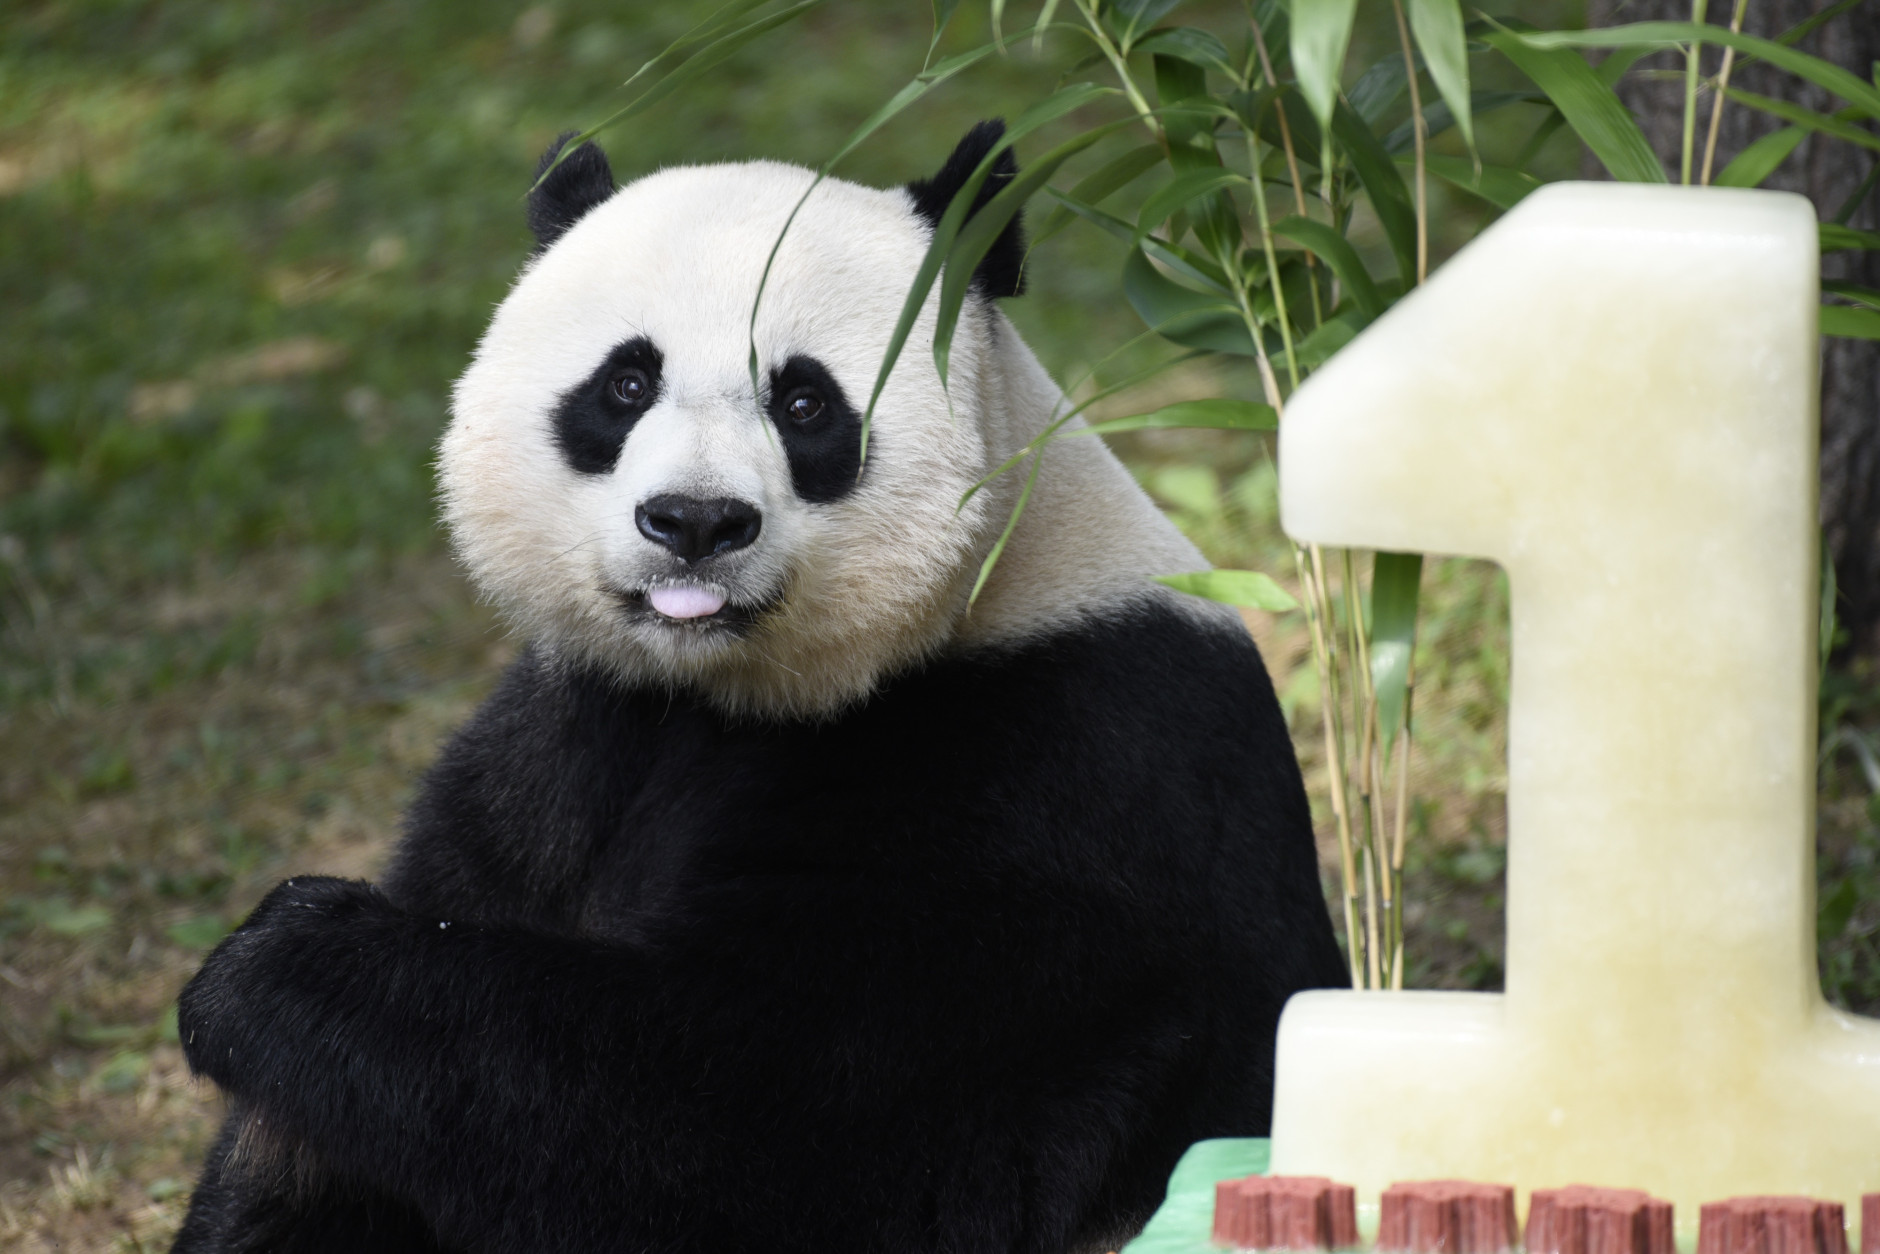 Mei Xiang, mother of giant pande cub Bei Bei, eats Bei Bei's birthday cake at the National Zoo in Washington, Saturday, Aug. 20, 2016, during a celebration of Bei Bei's first birthday. (AP Photo/Sait Serkan Gurbuz)